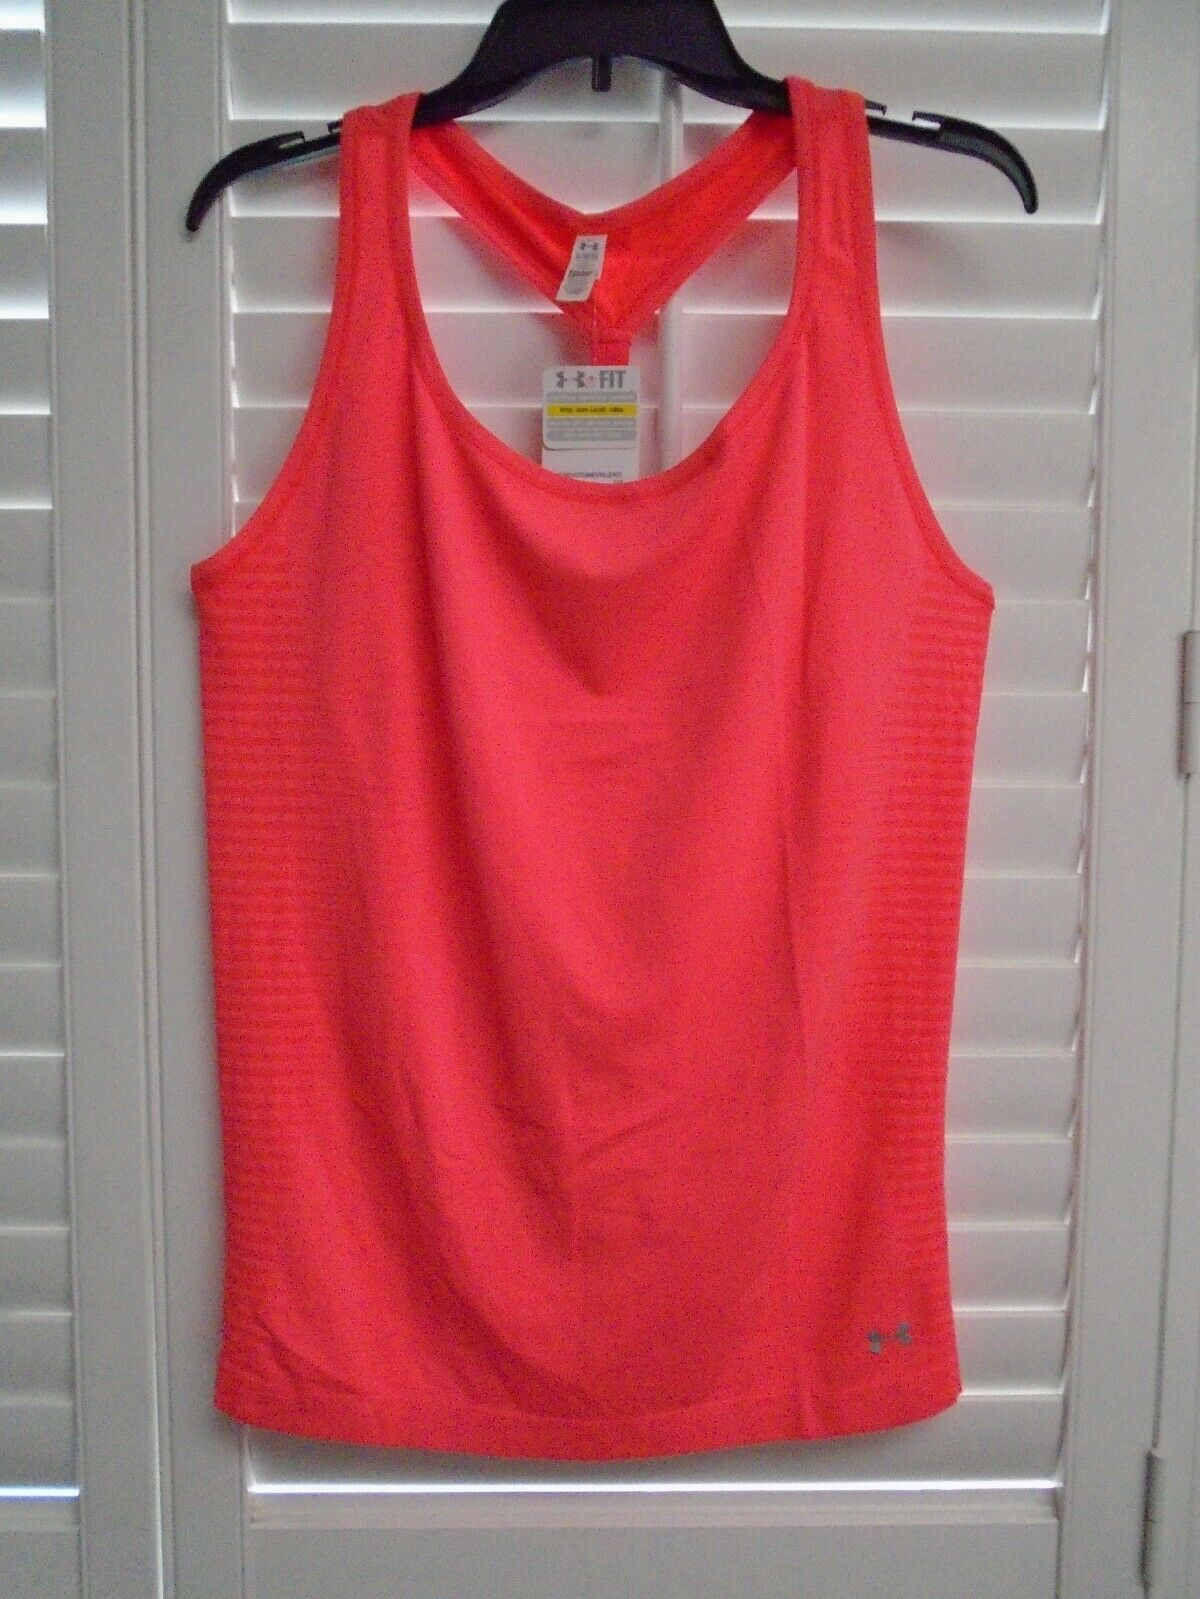 UNDER ARMOUR Heat Gear Bright Pink Fitted Athletic Racerback Tank Top XL NEW